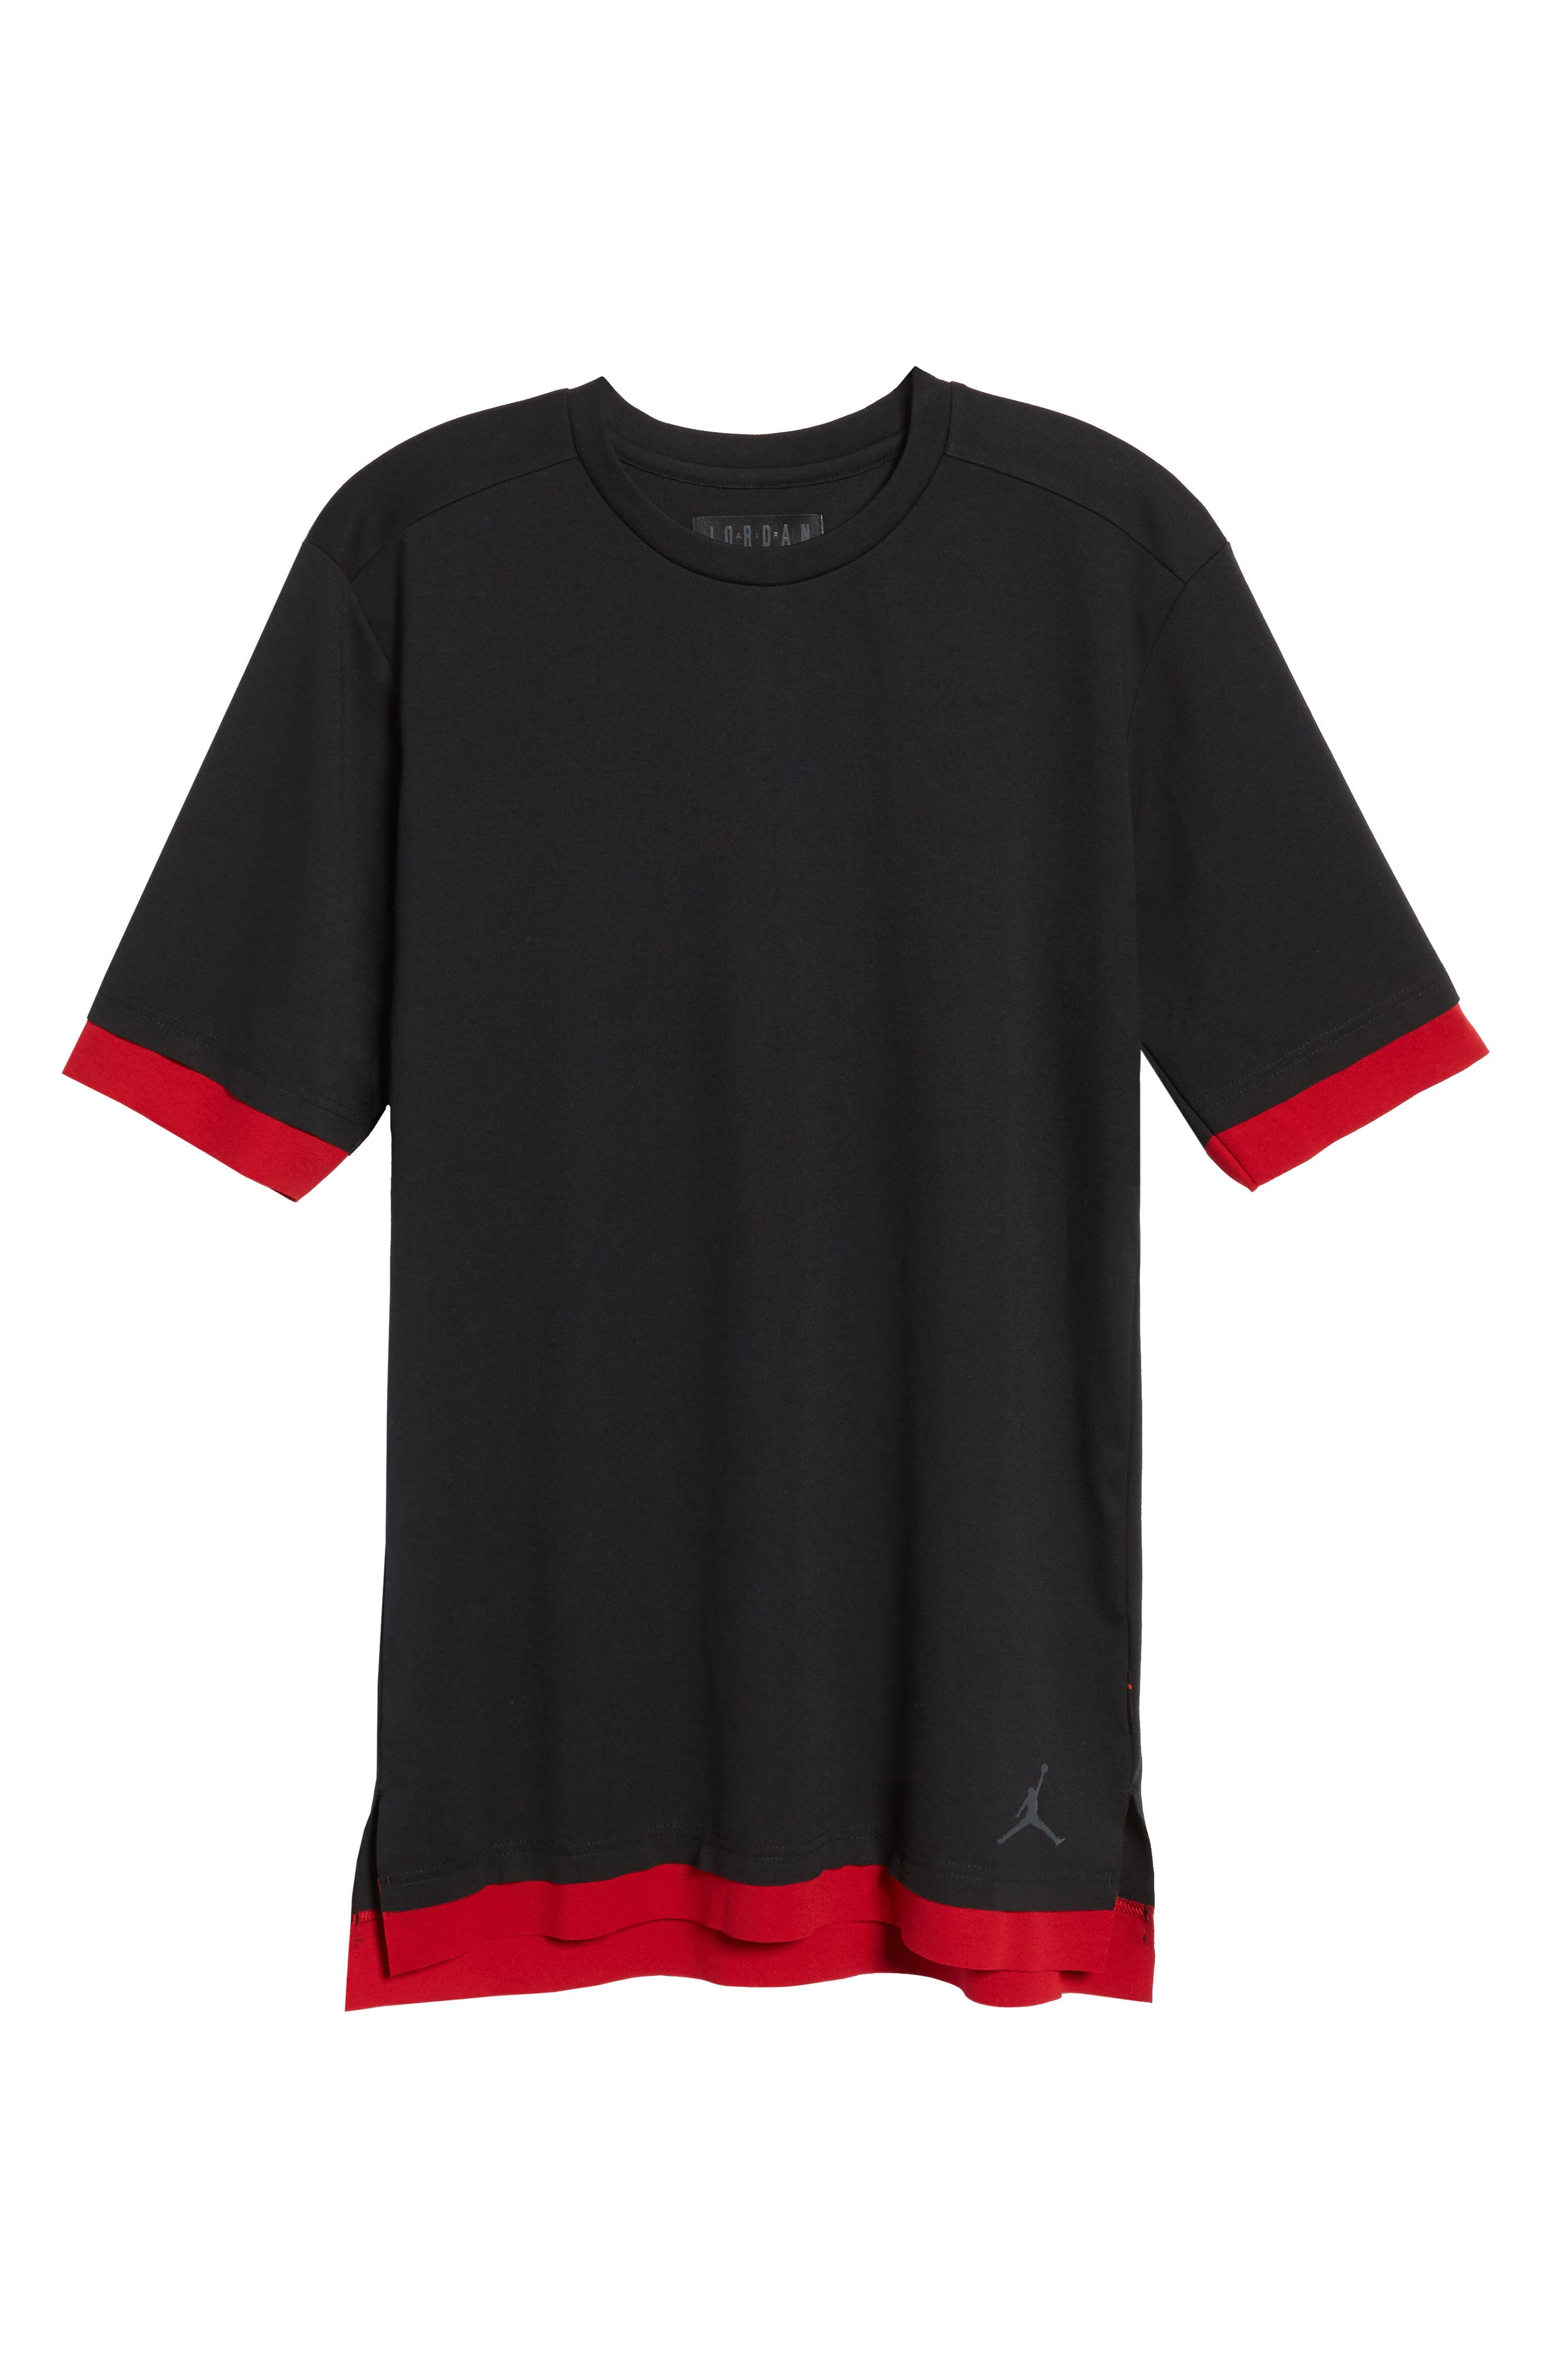 Sportswear Tech T-Shirt,                             Alternate thumbnail 6, color,                             BLACK/ GYM RED/ ANTHRACITE